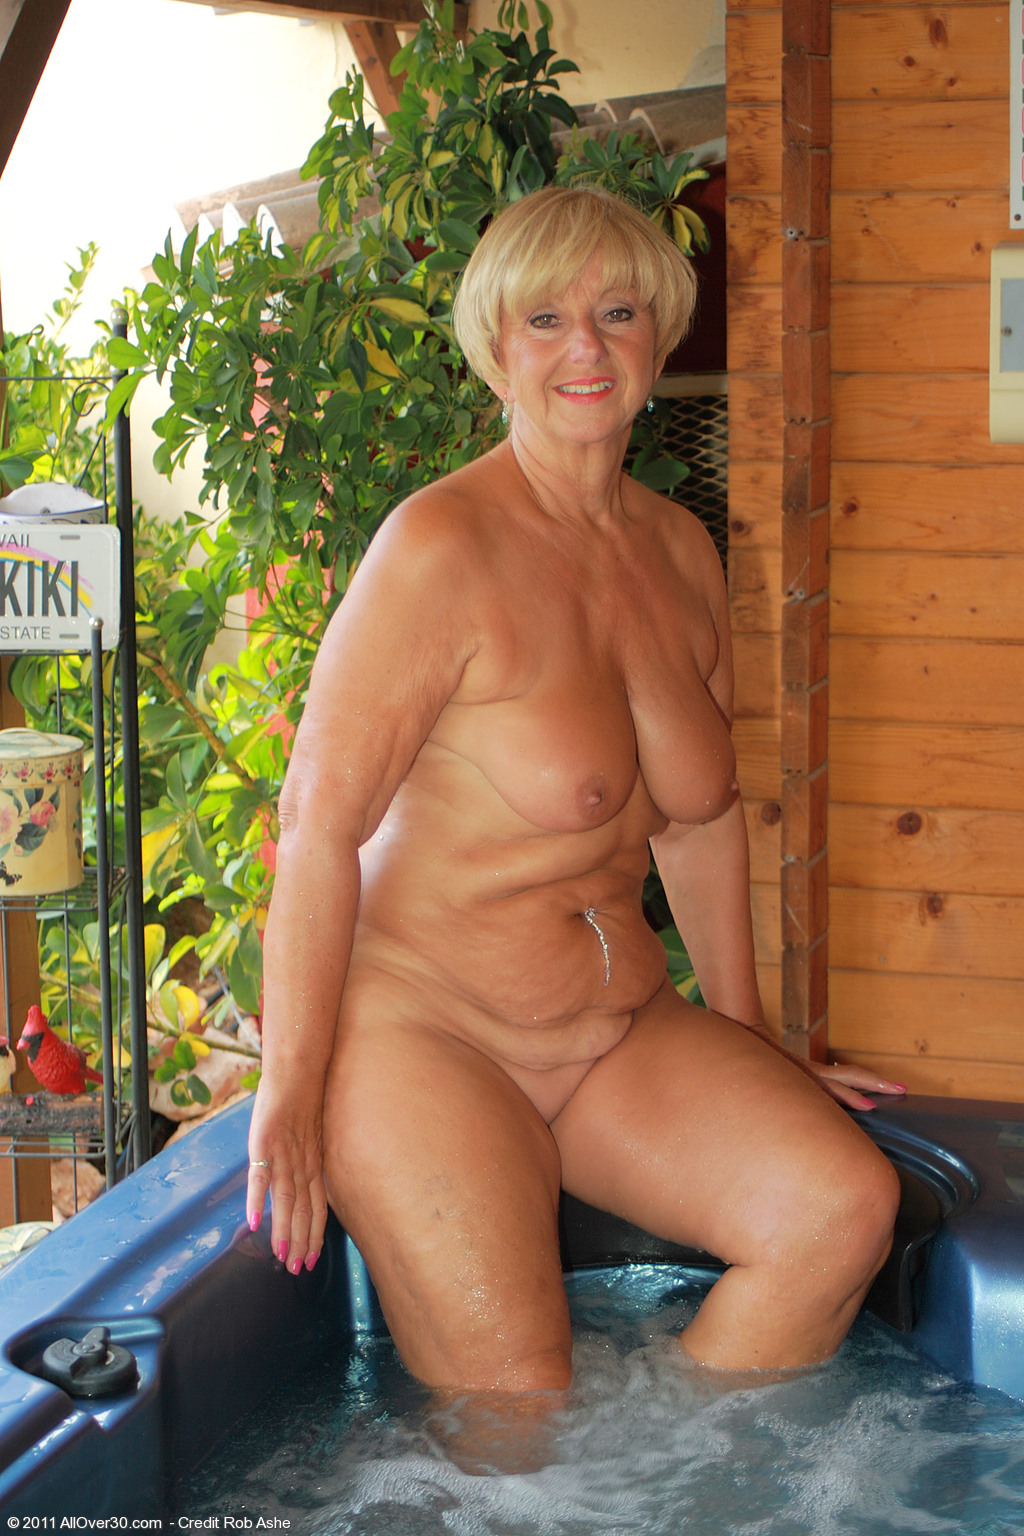 62 year old samantha t - exclusive milf pictures from allover30